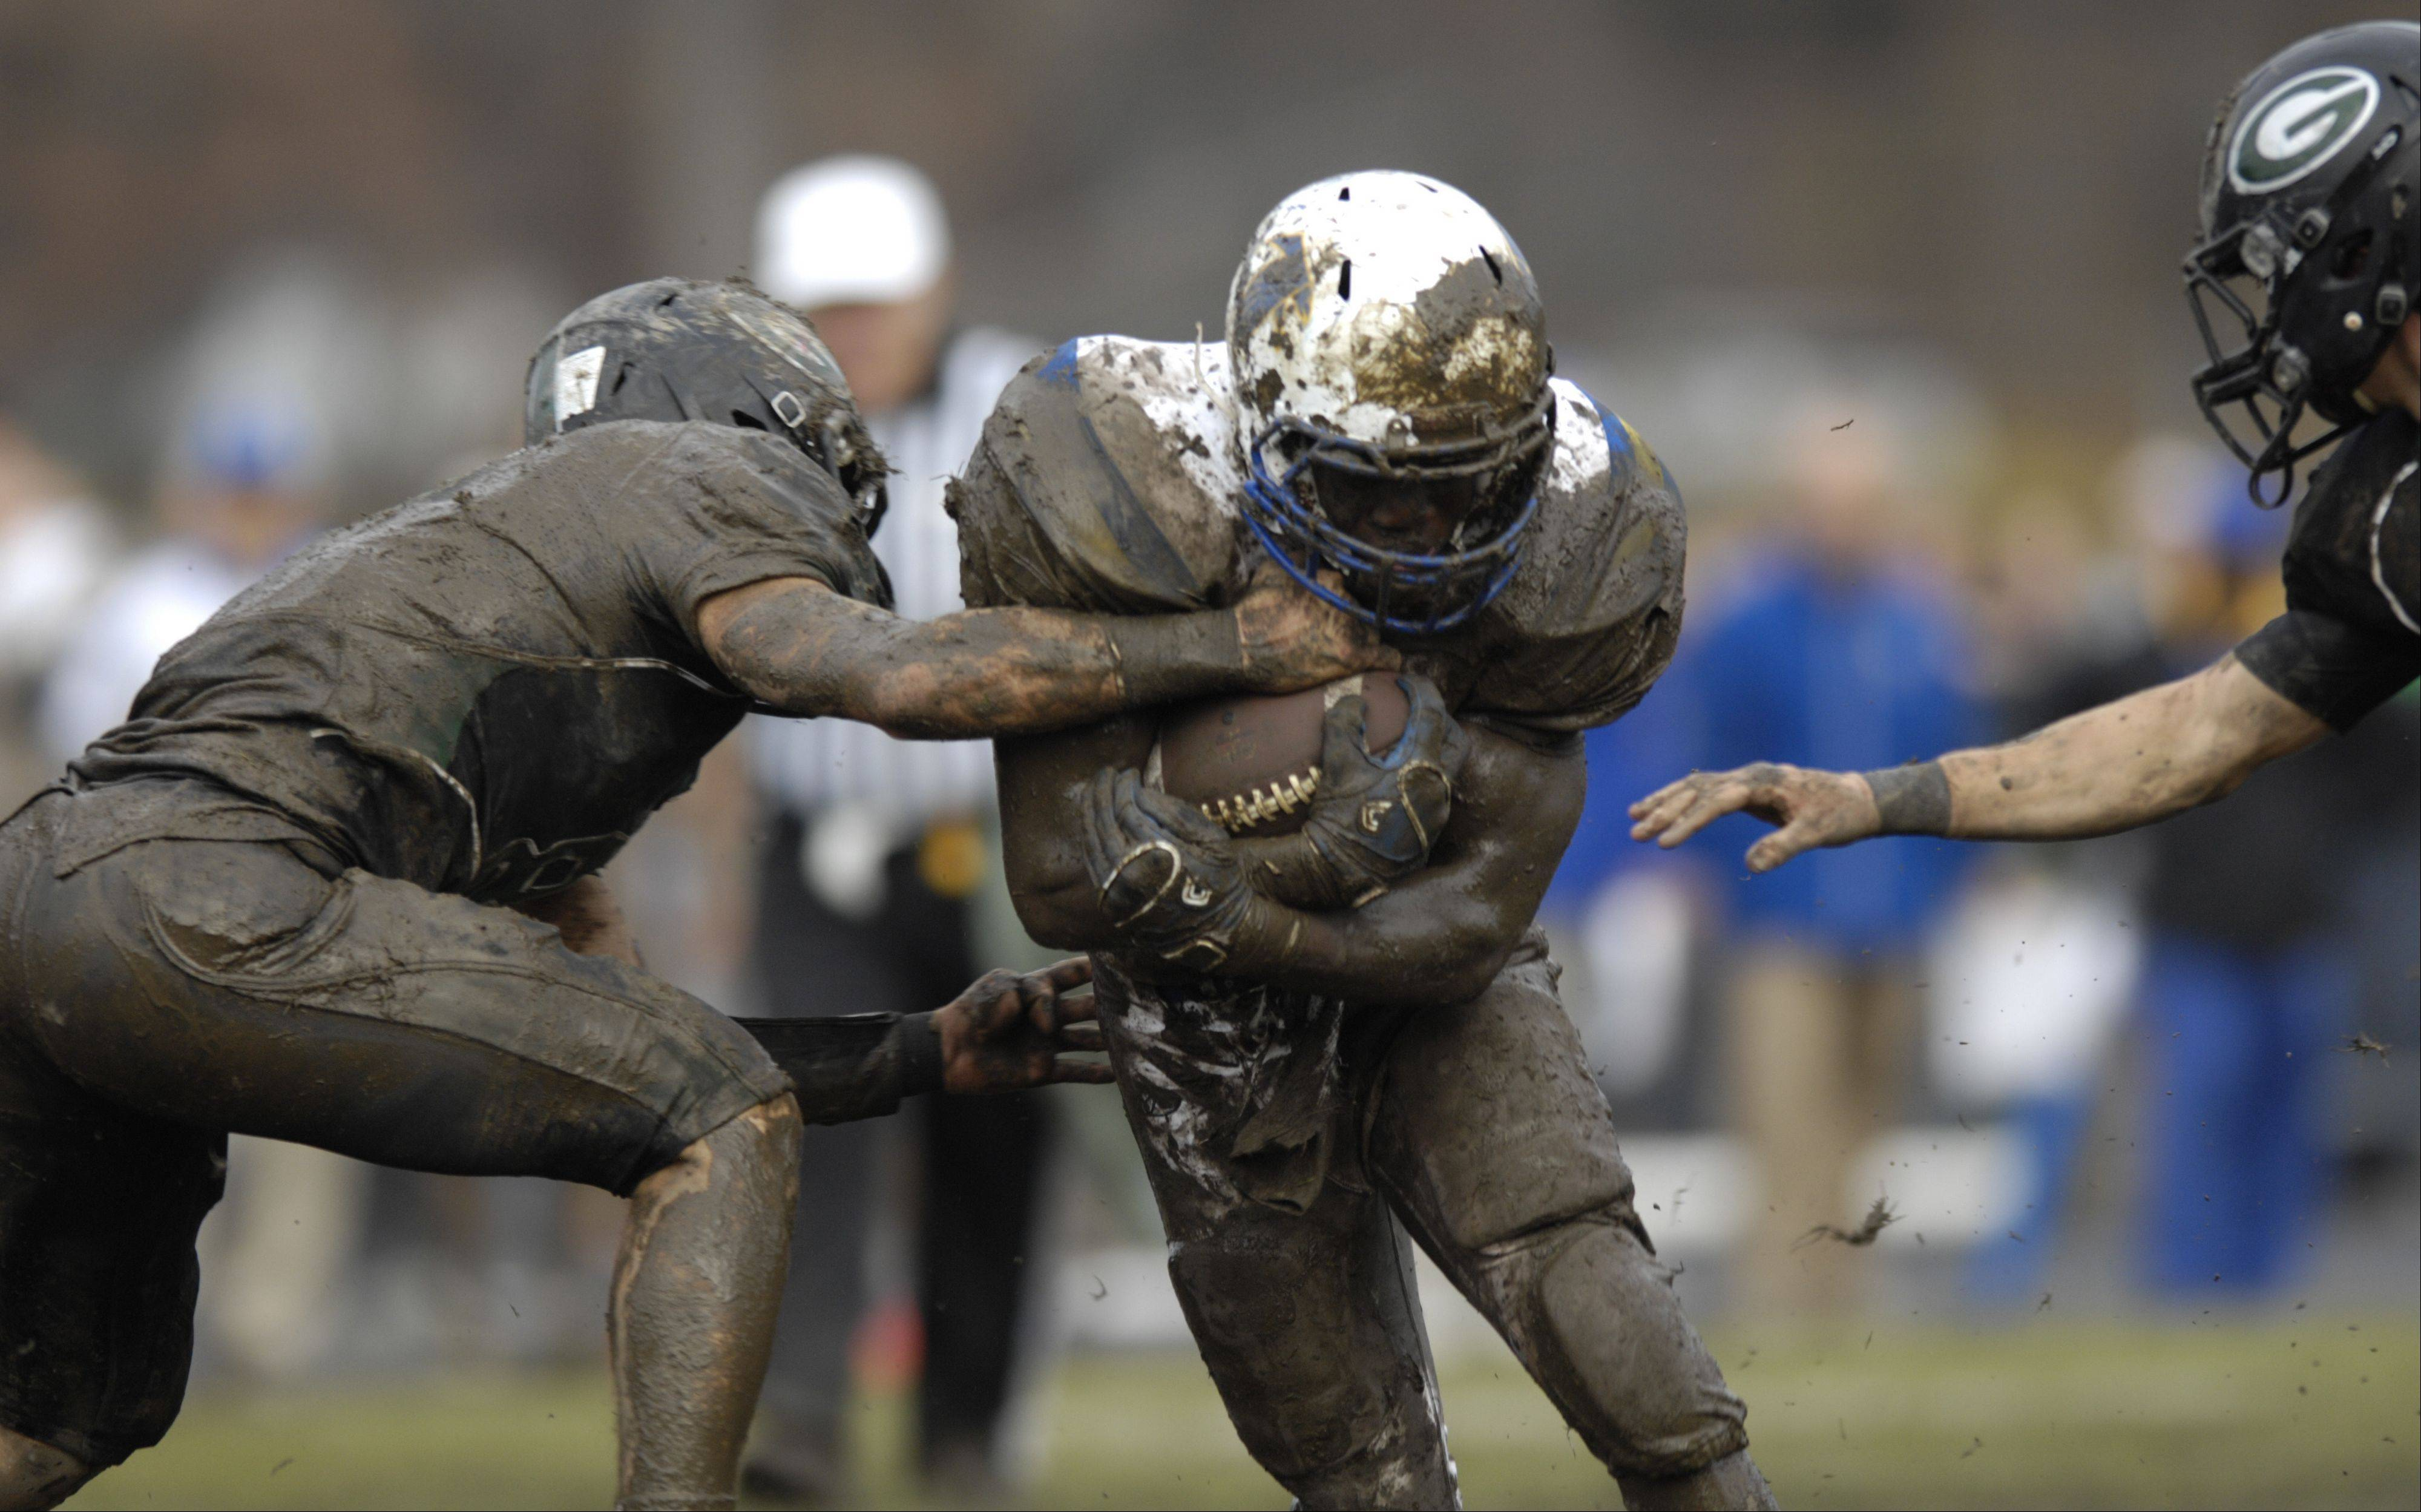 It was a mud bowl last Saturday when Glenbard West defeated Wheaton North in their third-round playoff game in Glen Ellyn. After freezing conditions this week, the IHSA approved a decision to move Saturday's 1 p.m. game between Lake Zurich and Glenbard West to nearby Glenbard South High School. The game time and date are unchanged.